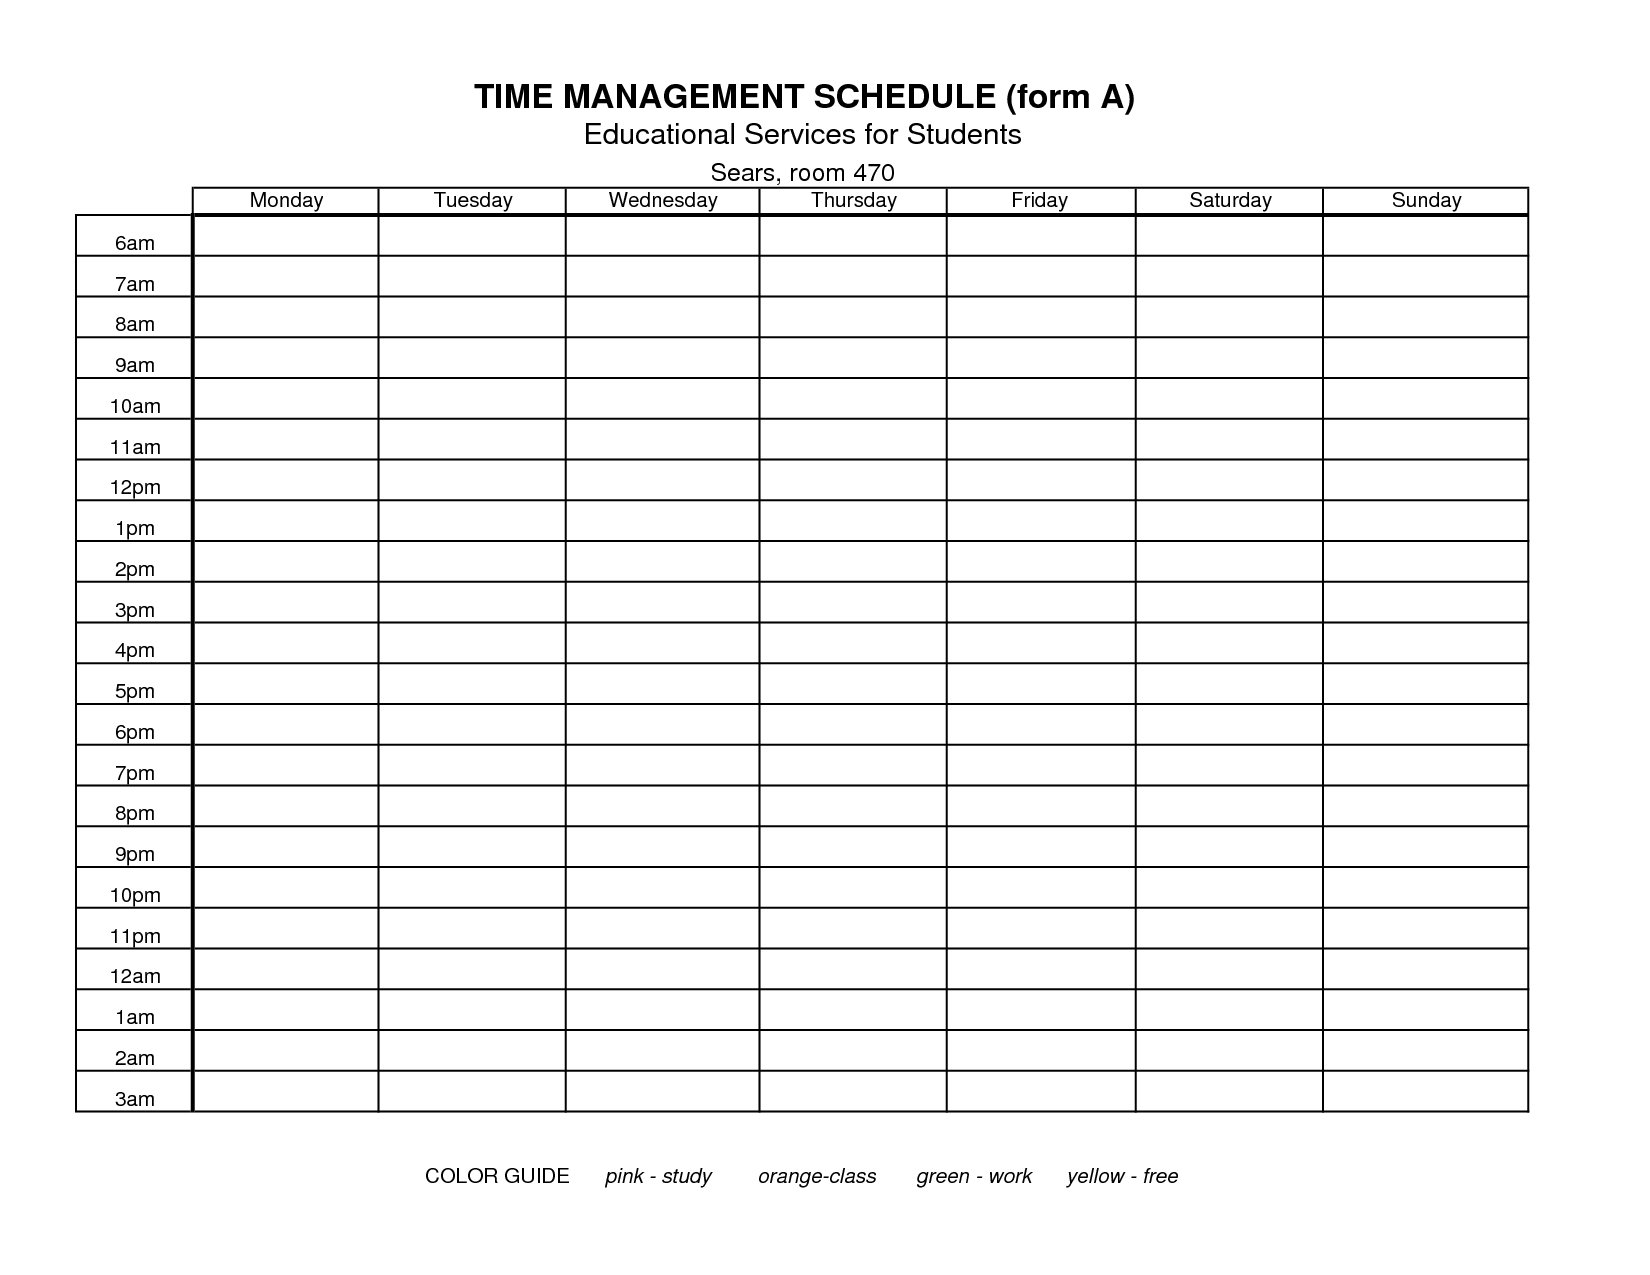 FTU Schedule Template Found Free On The WWW I Do Not